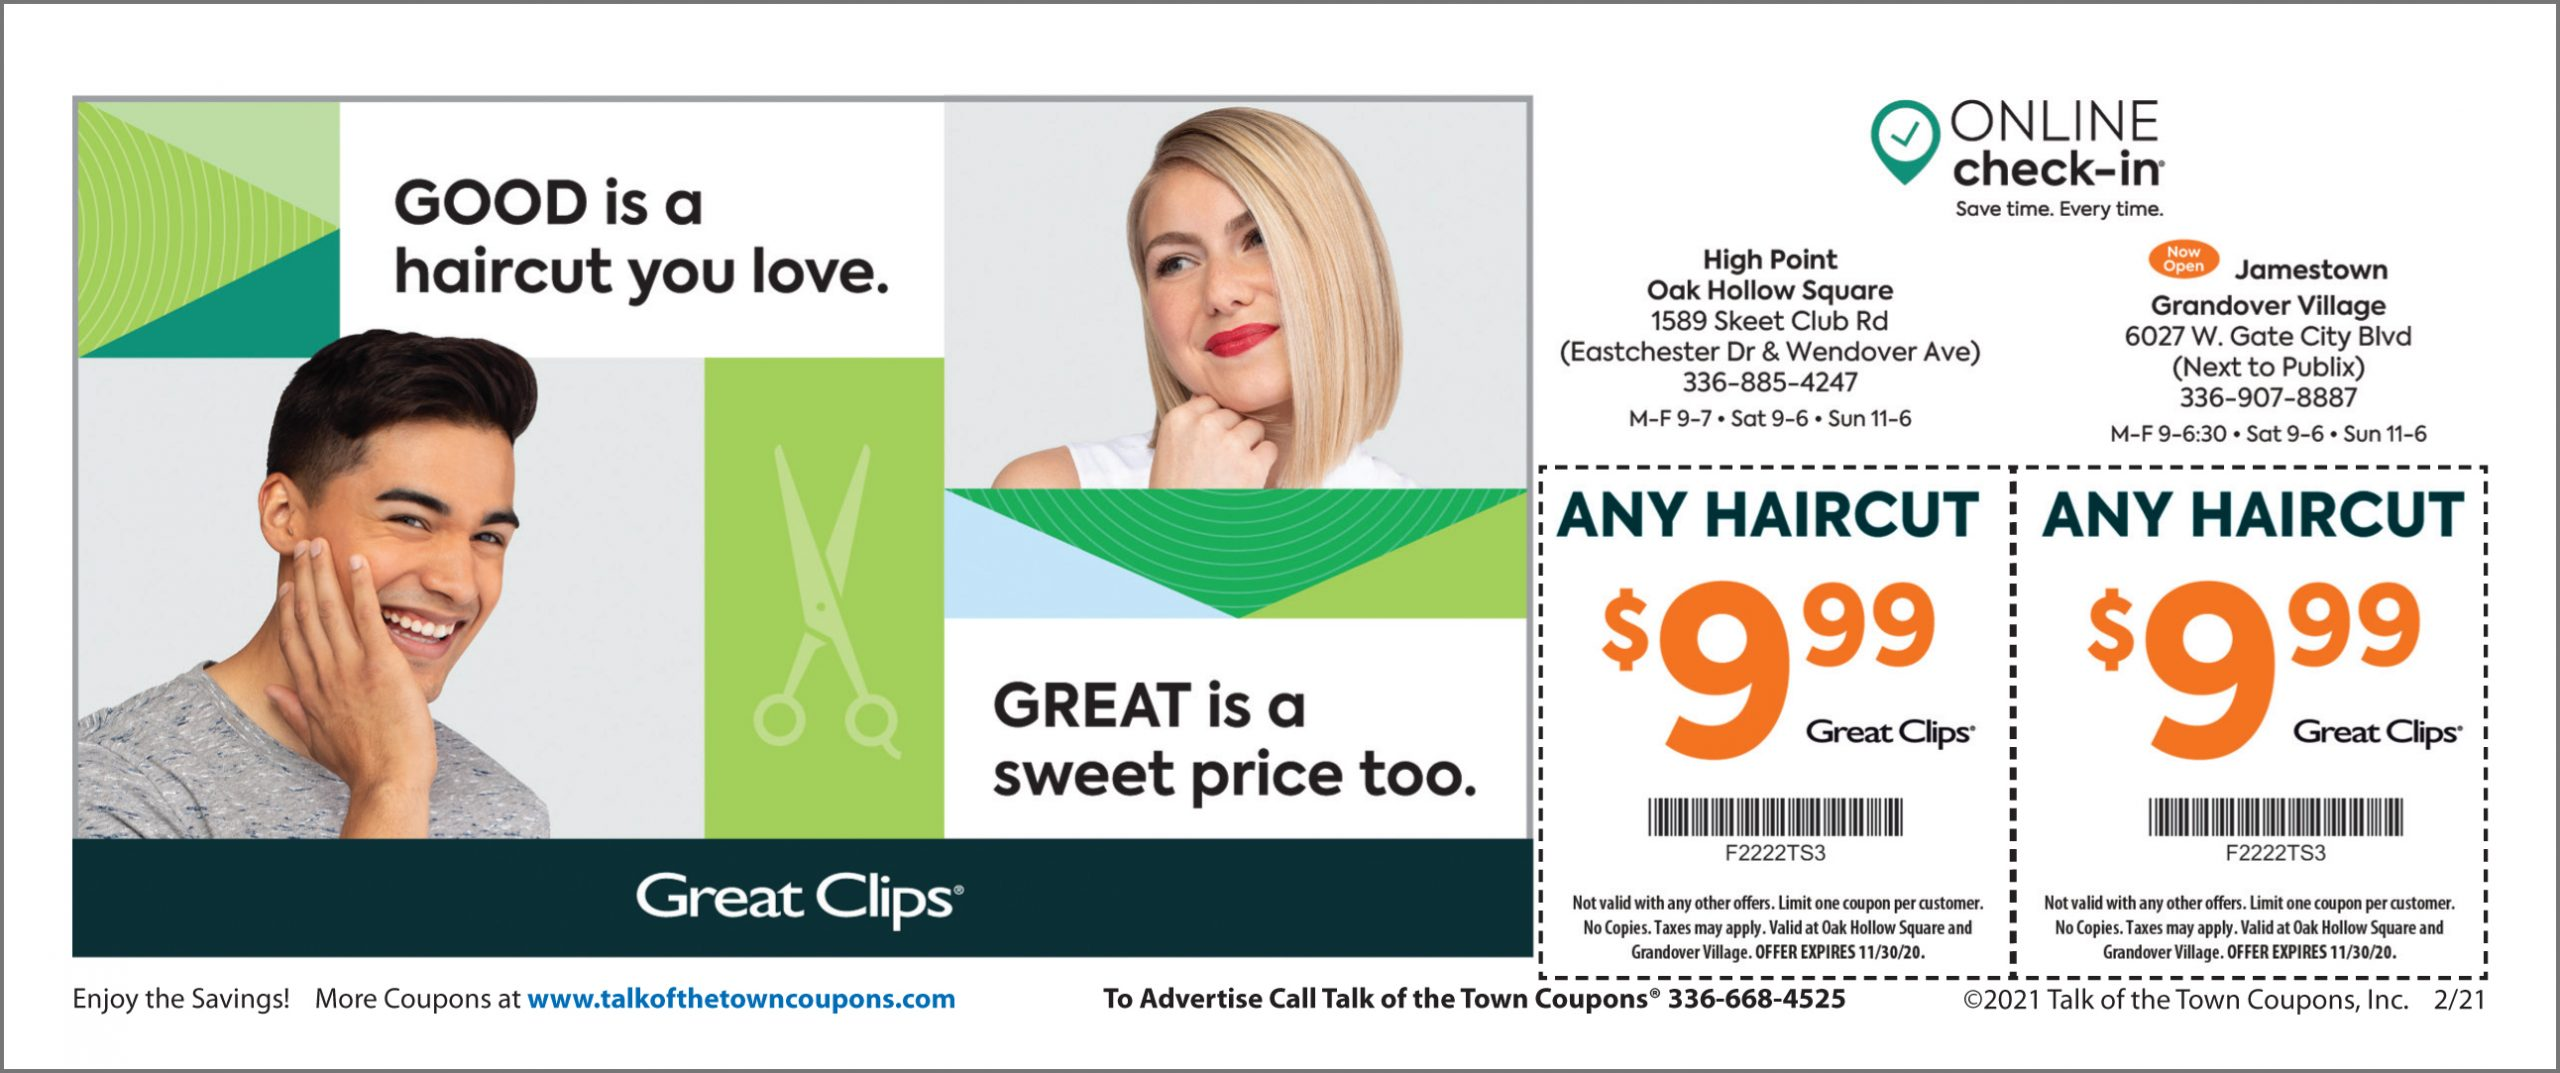 Great Clips FEB2021 Coupons